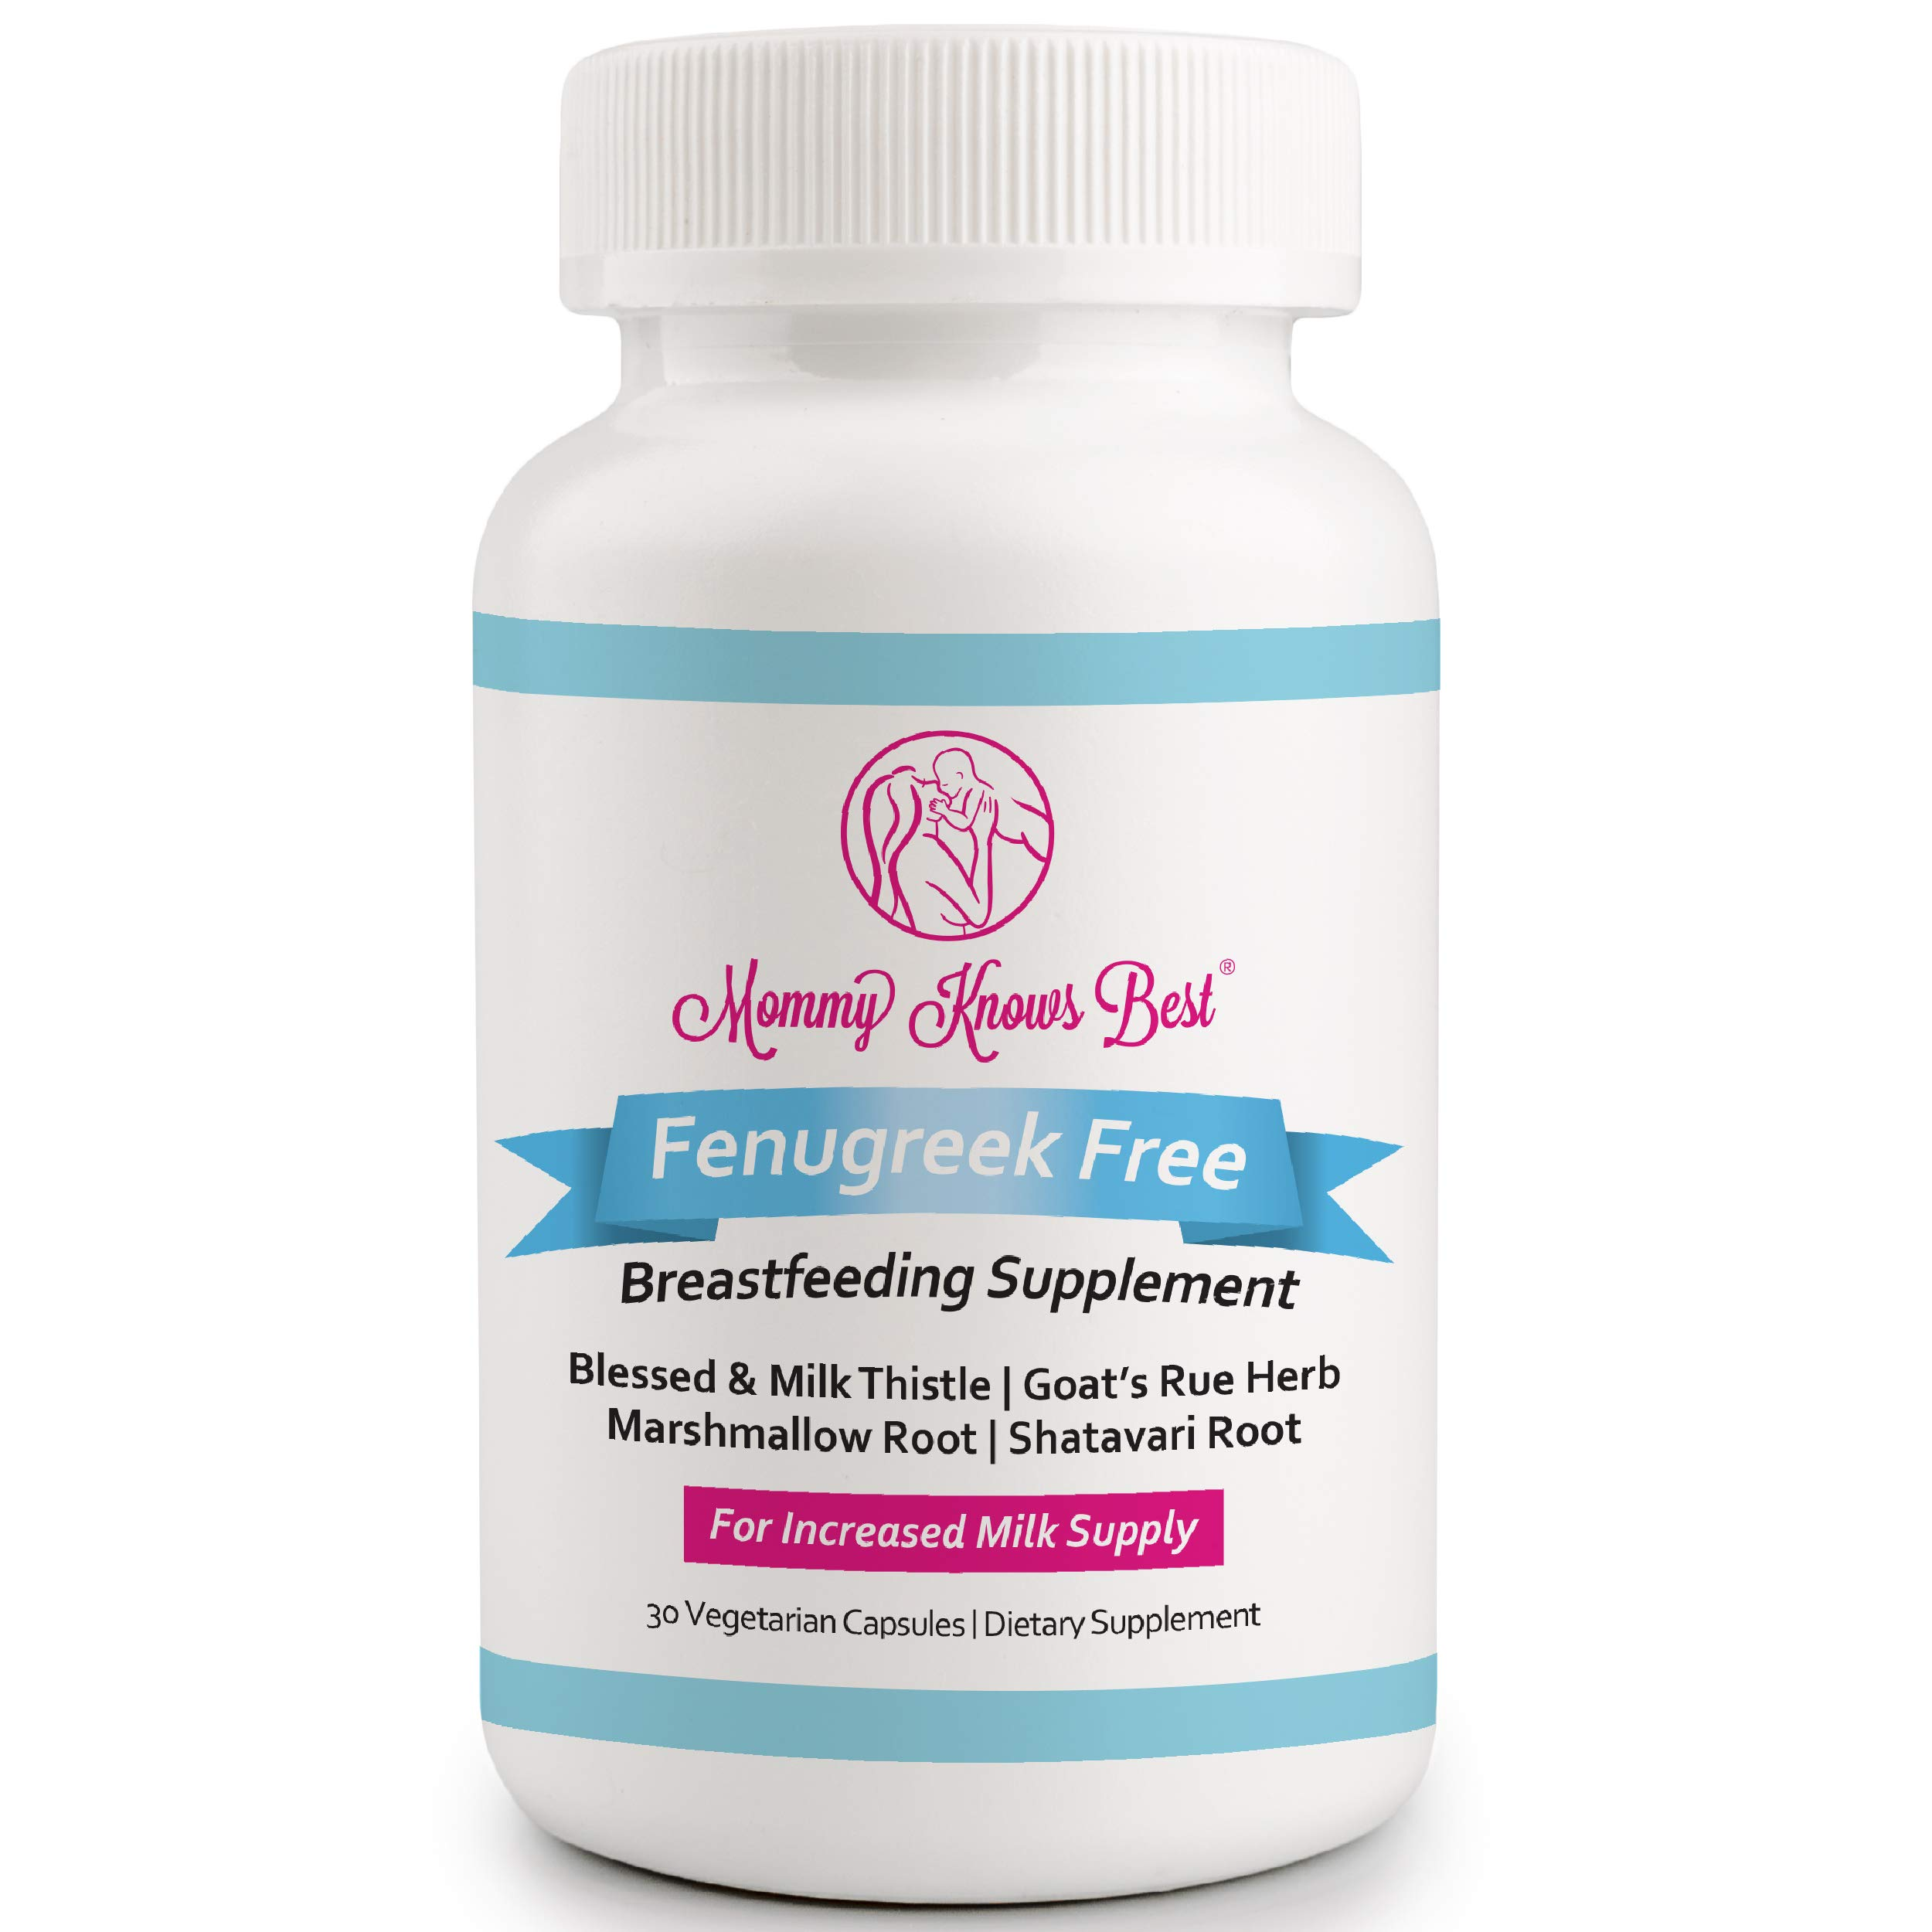 Lactation Supplement for Breastfeeding Support - Fenugreek Free - Breast Feeding Supplements for Milk Supply Increase - 30 Vegetarian Capsules Pills for Increased Breastmilk